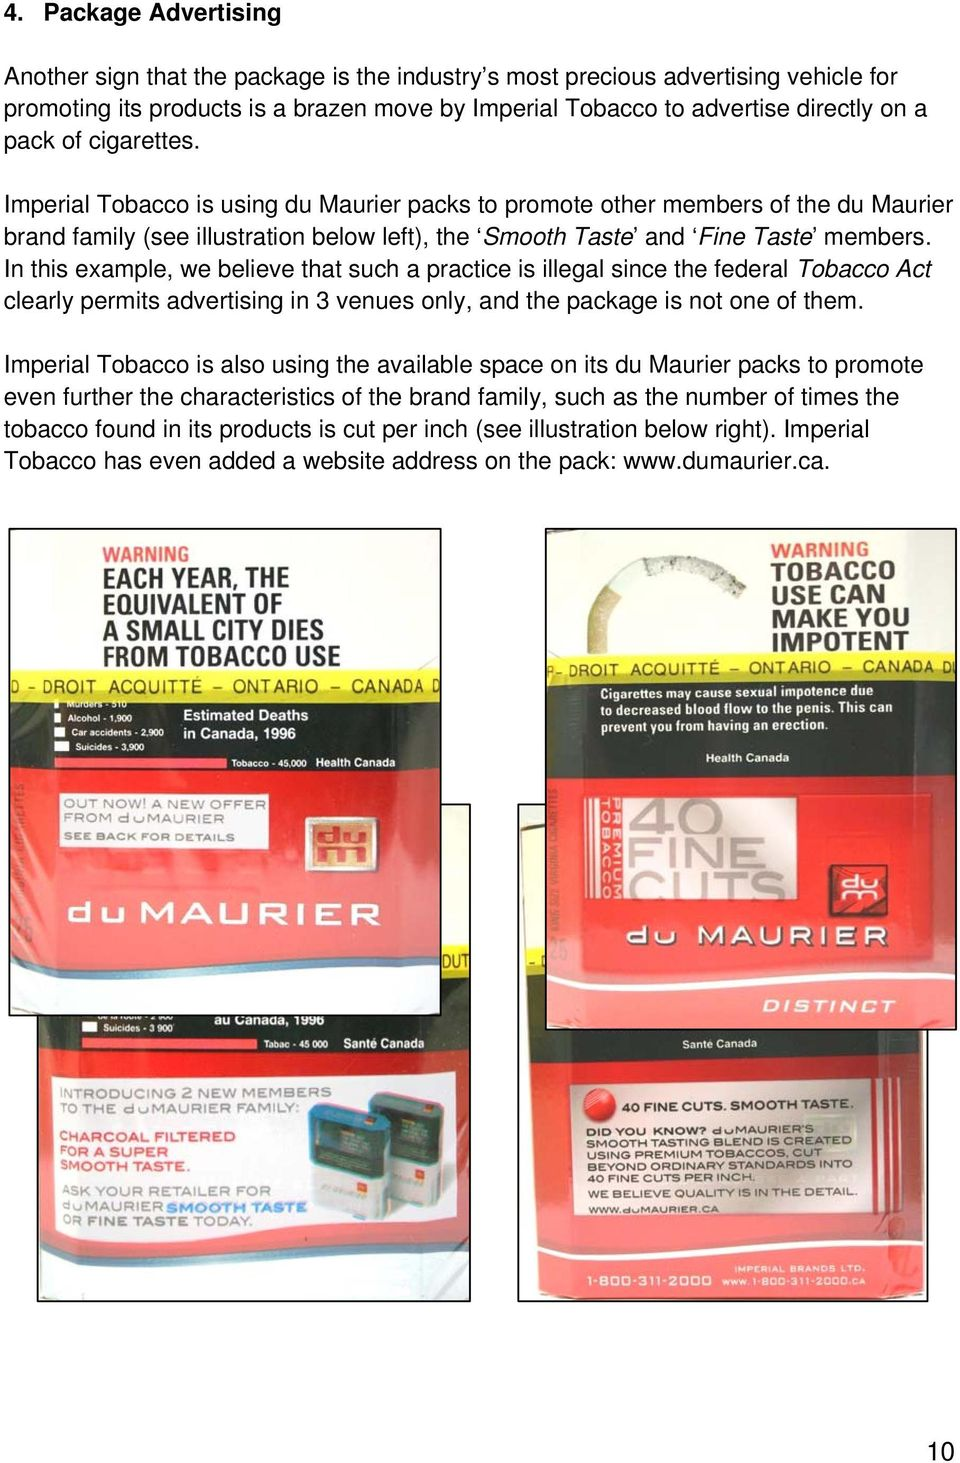 In this example, we believe that such a practice is illegal since the federal Tobacco Act clearly permits advertising in 3 venues only, and the package is not one of them.